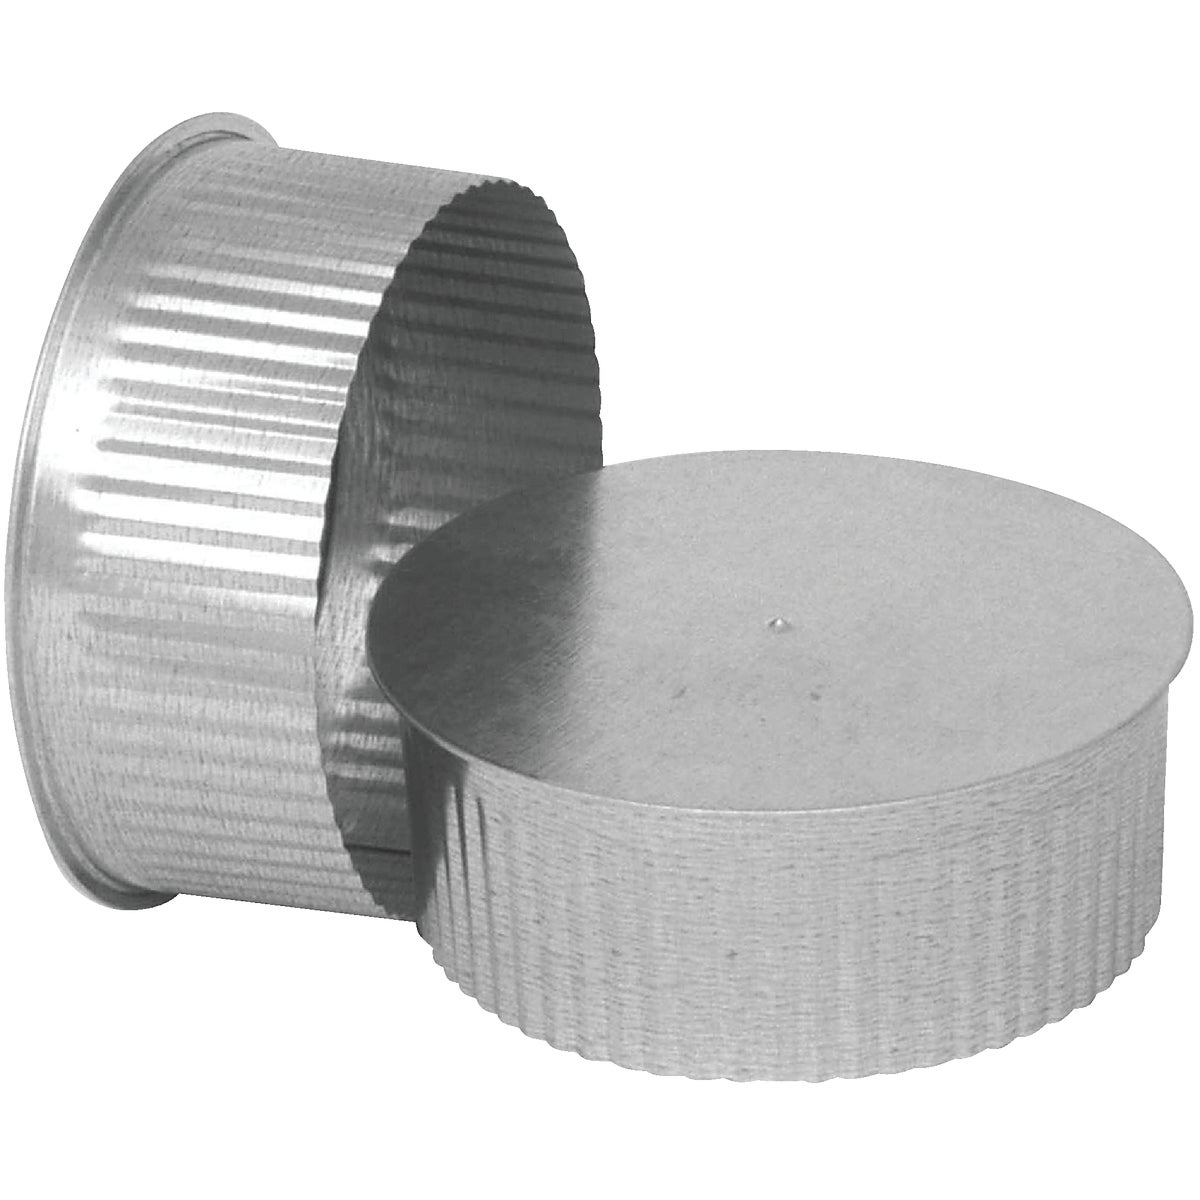 "4"" 30GA GALV TEE CAP - GV0733 by Imperial Mfg Group"